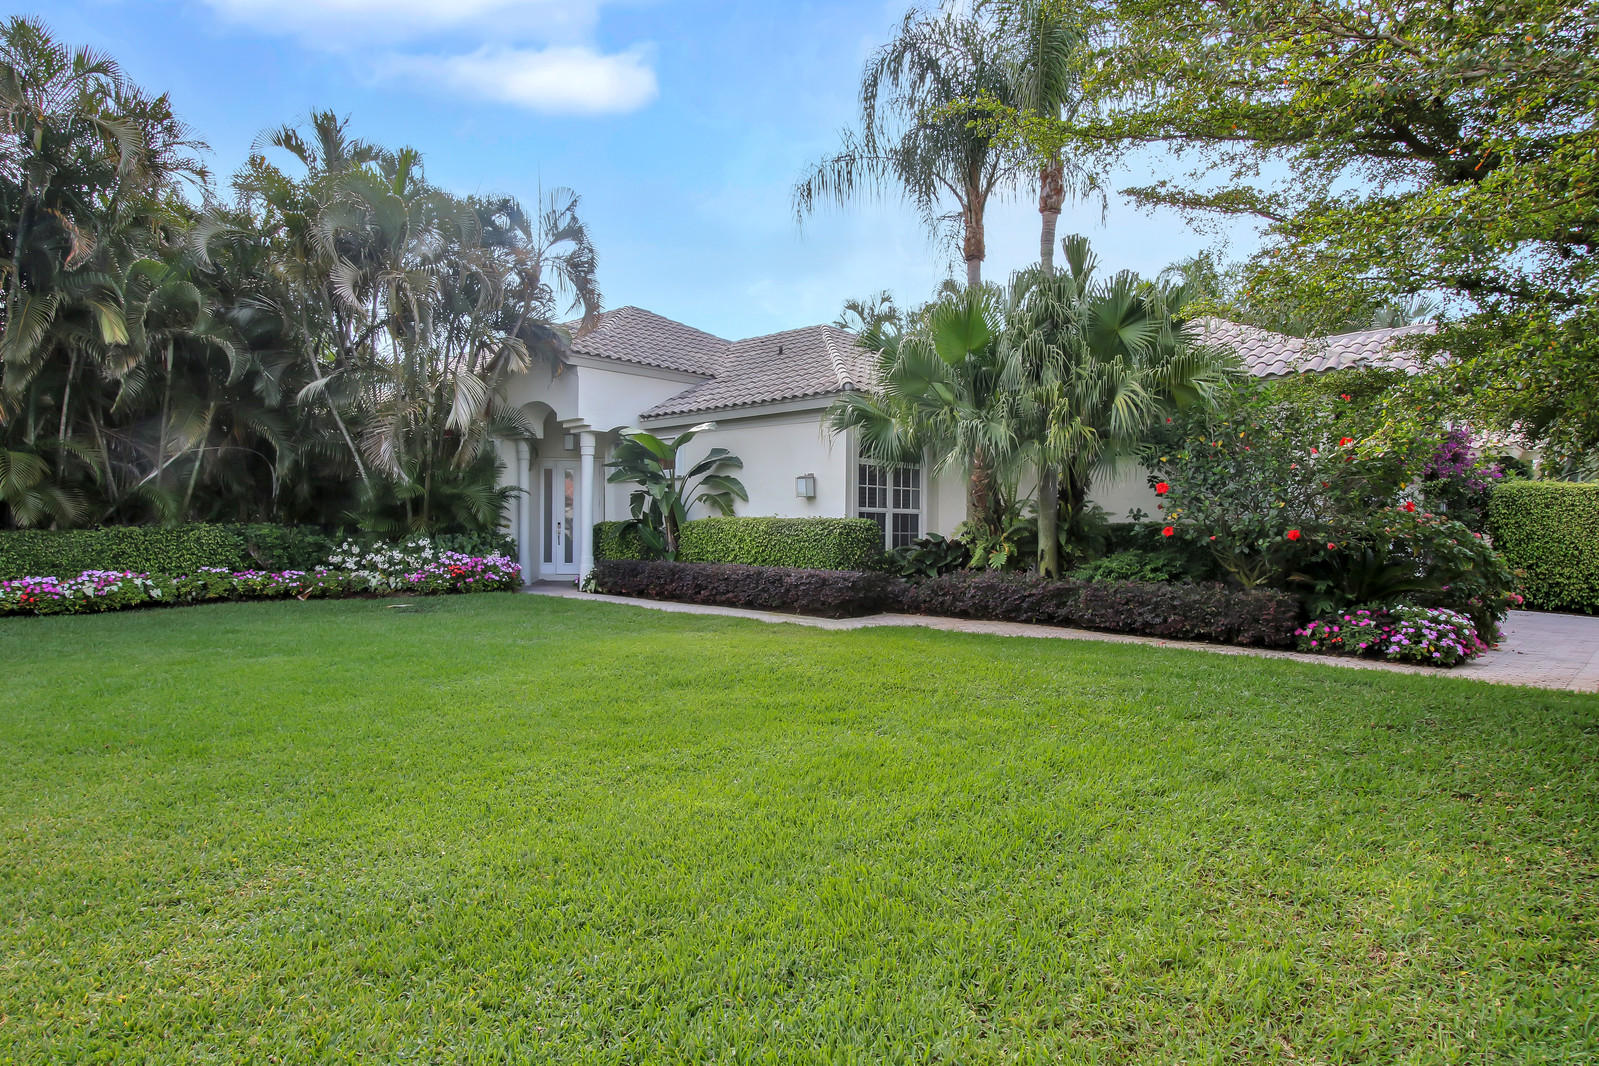 12611 Mallet Circle, Wellington, Florida 33414, 3 Bedrooms Bedrooms, ,3.5 BathroomsBathrooms,Single Family,For Rent,PALM BEACH POLO & CC,Mallet,1,RX-10545050